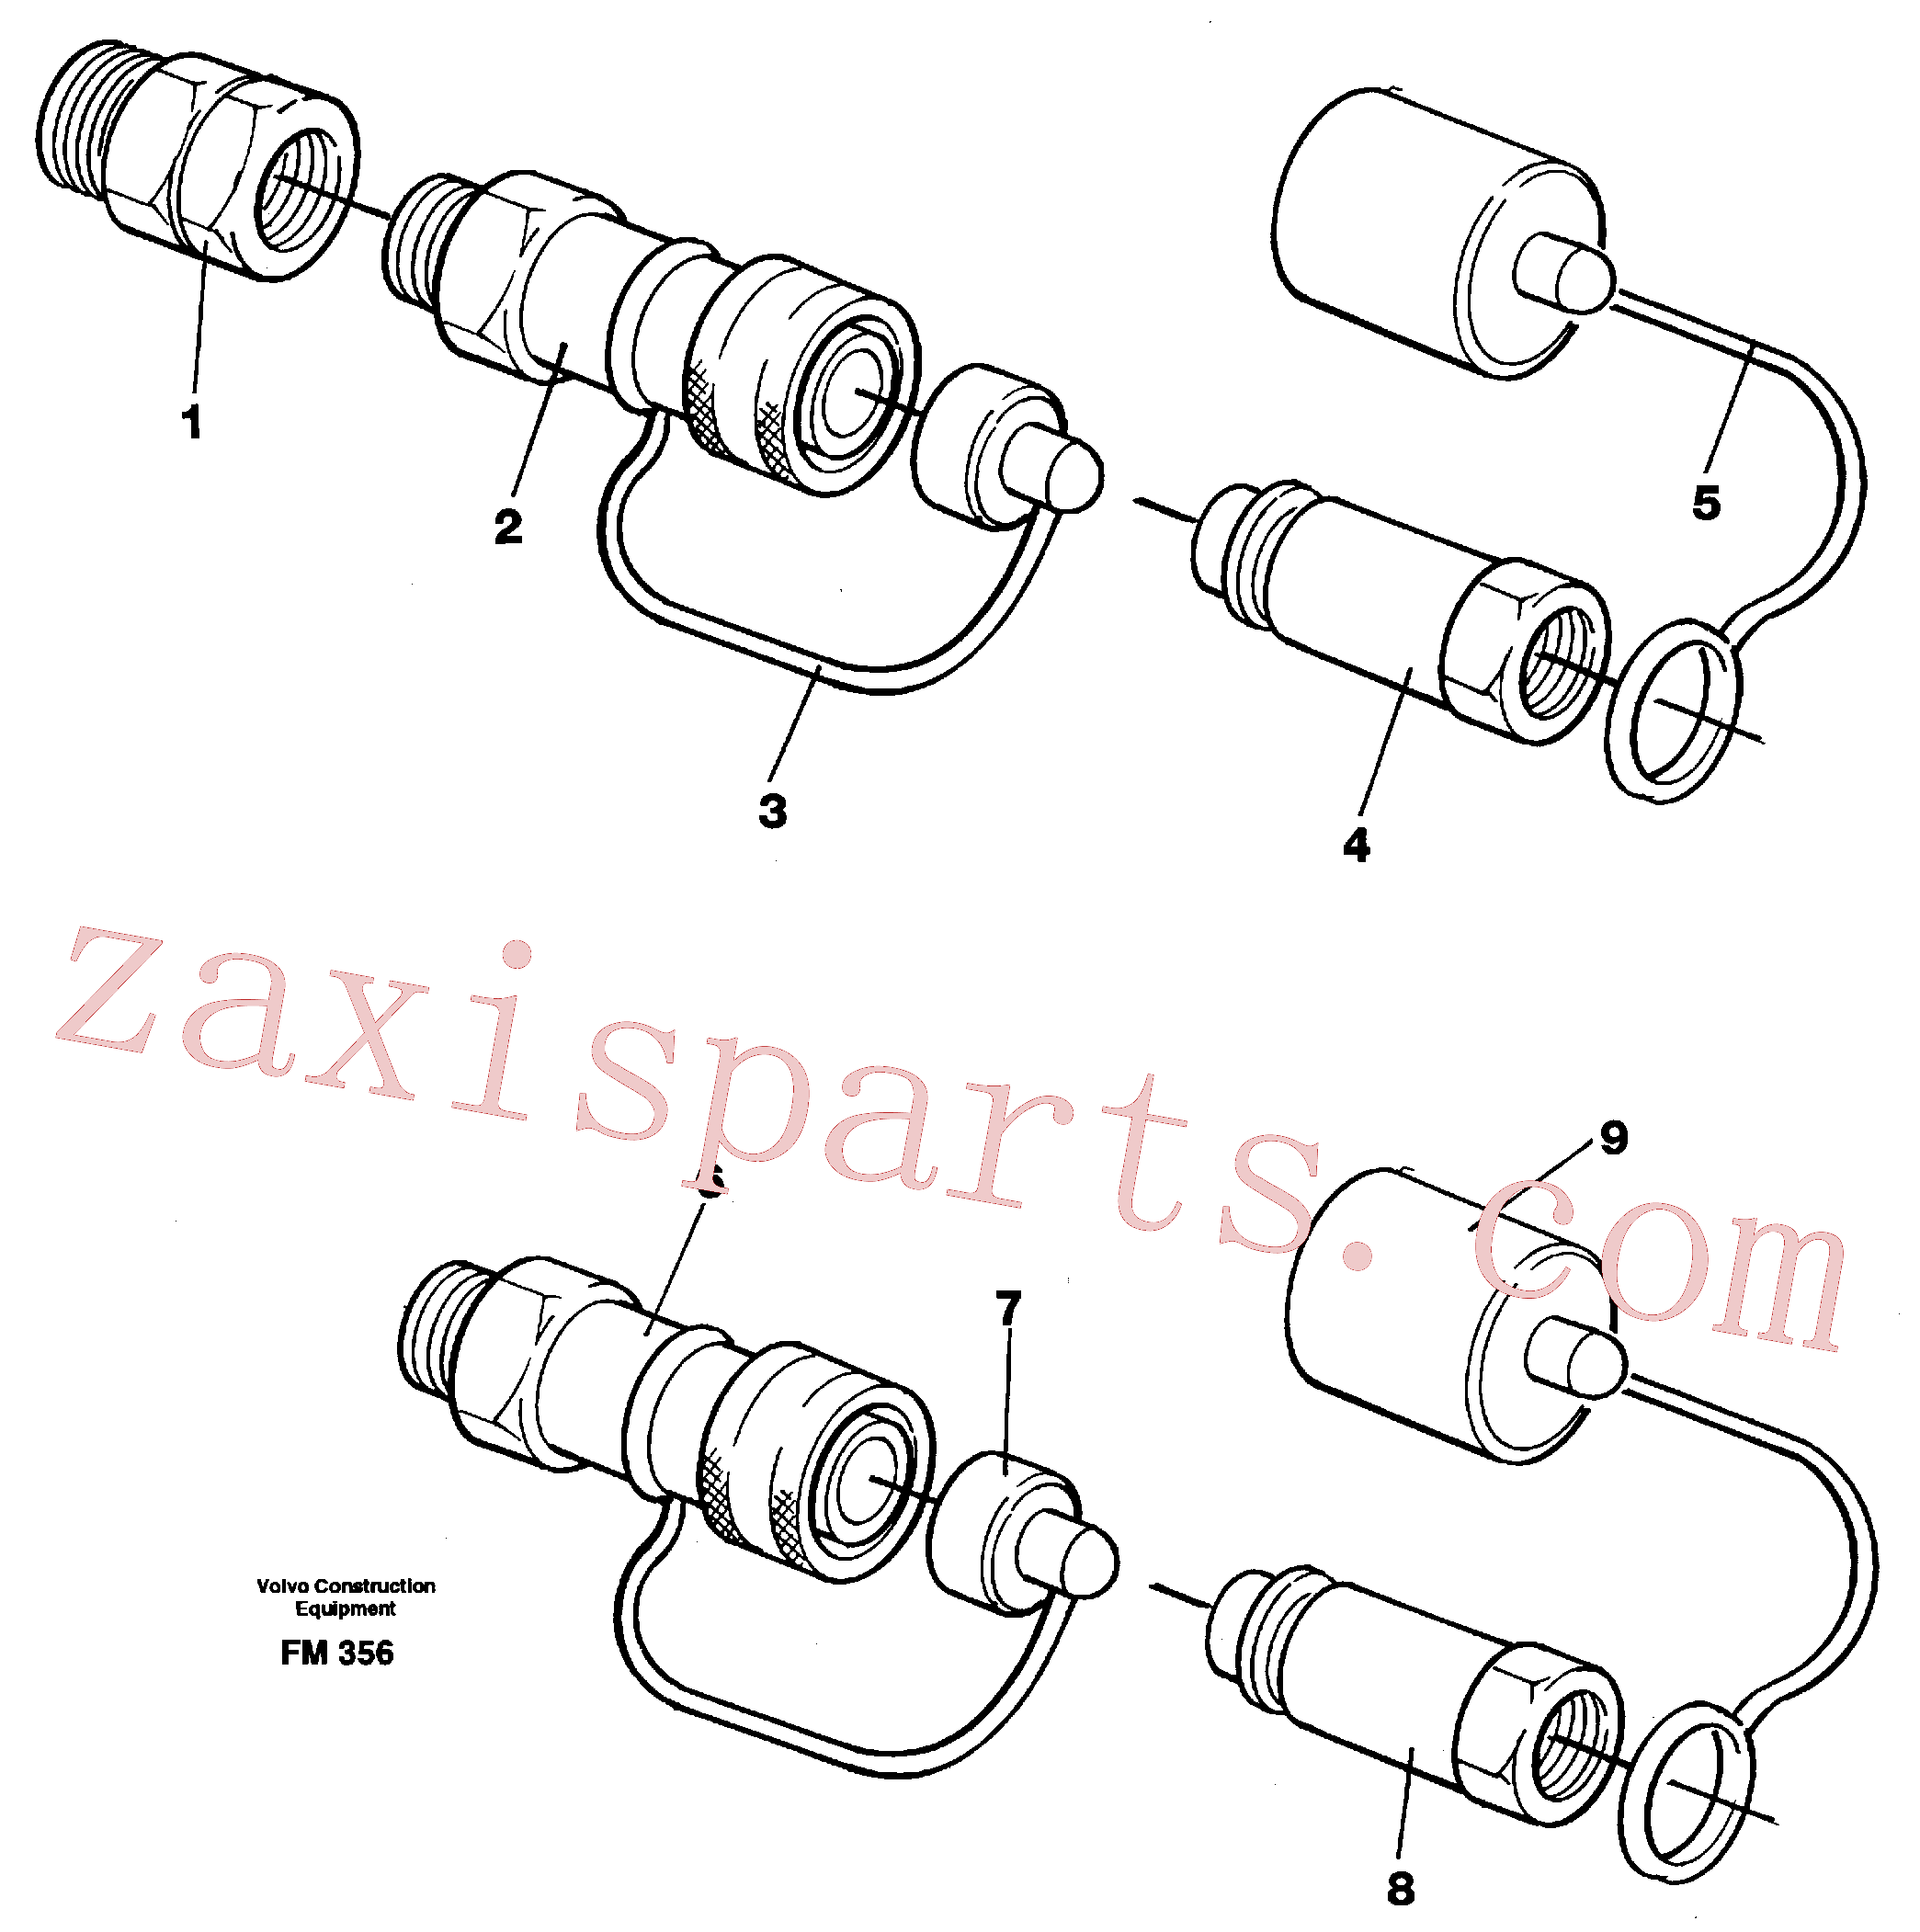 VOE14210942 for Volvo Quick connection kit, grab equipment(FM356 assembly)